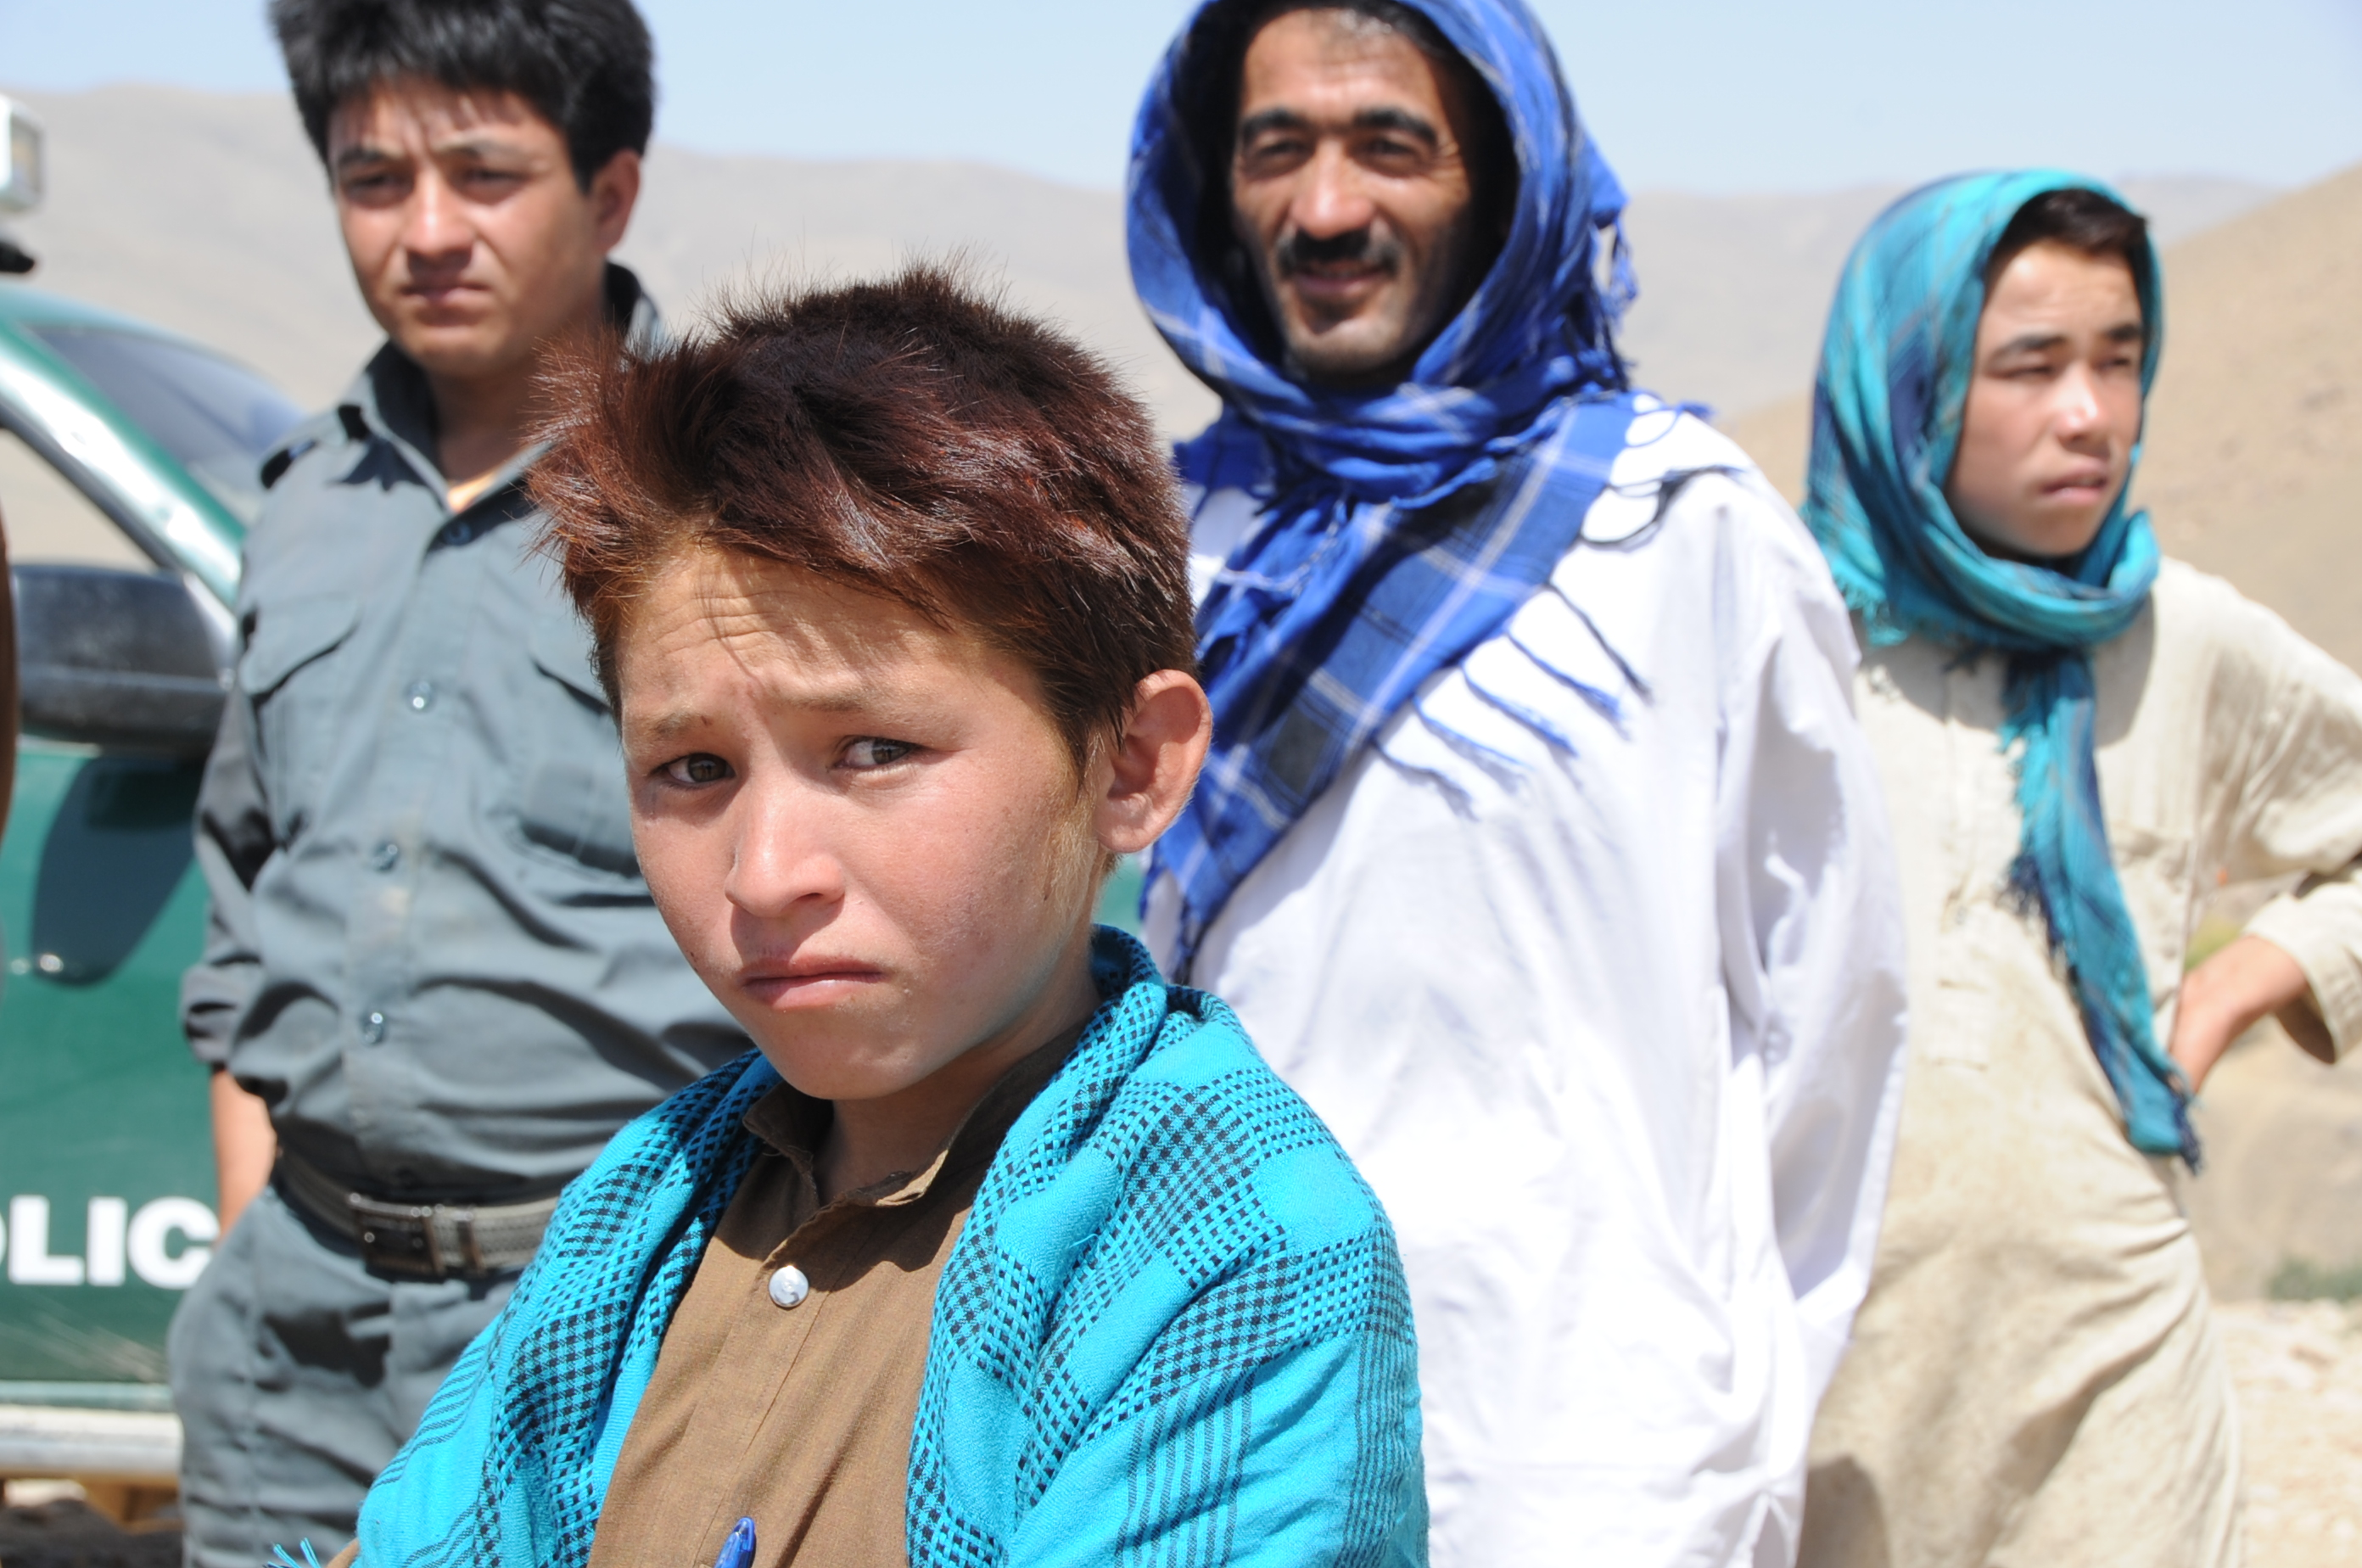 choices and personal responsibility the bailey blog i picked the hazaras as my research topic they are frequently belittled and abused throughout the kite runner and i was curious as to why they were such